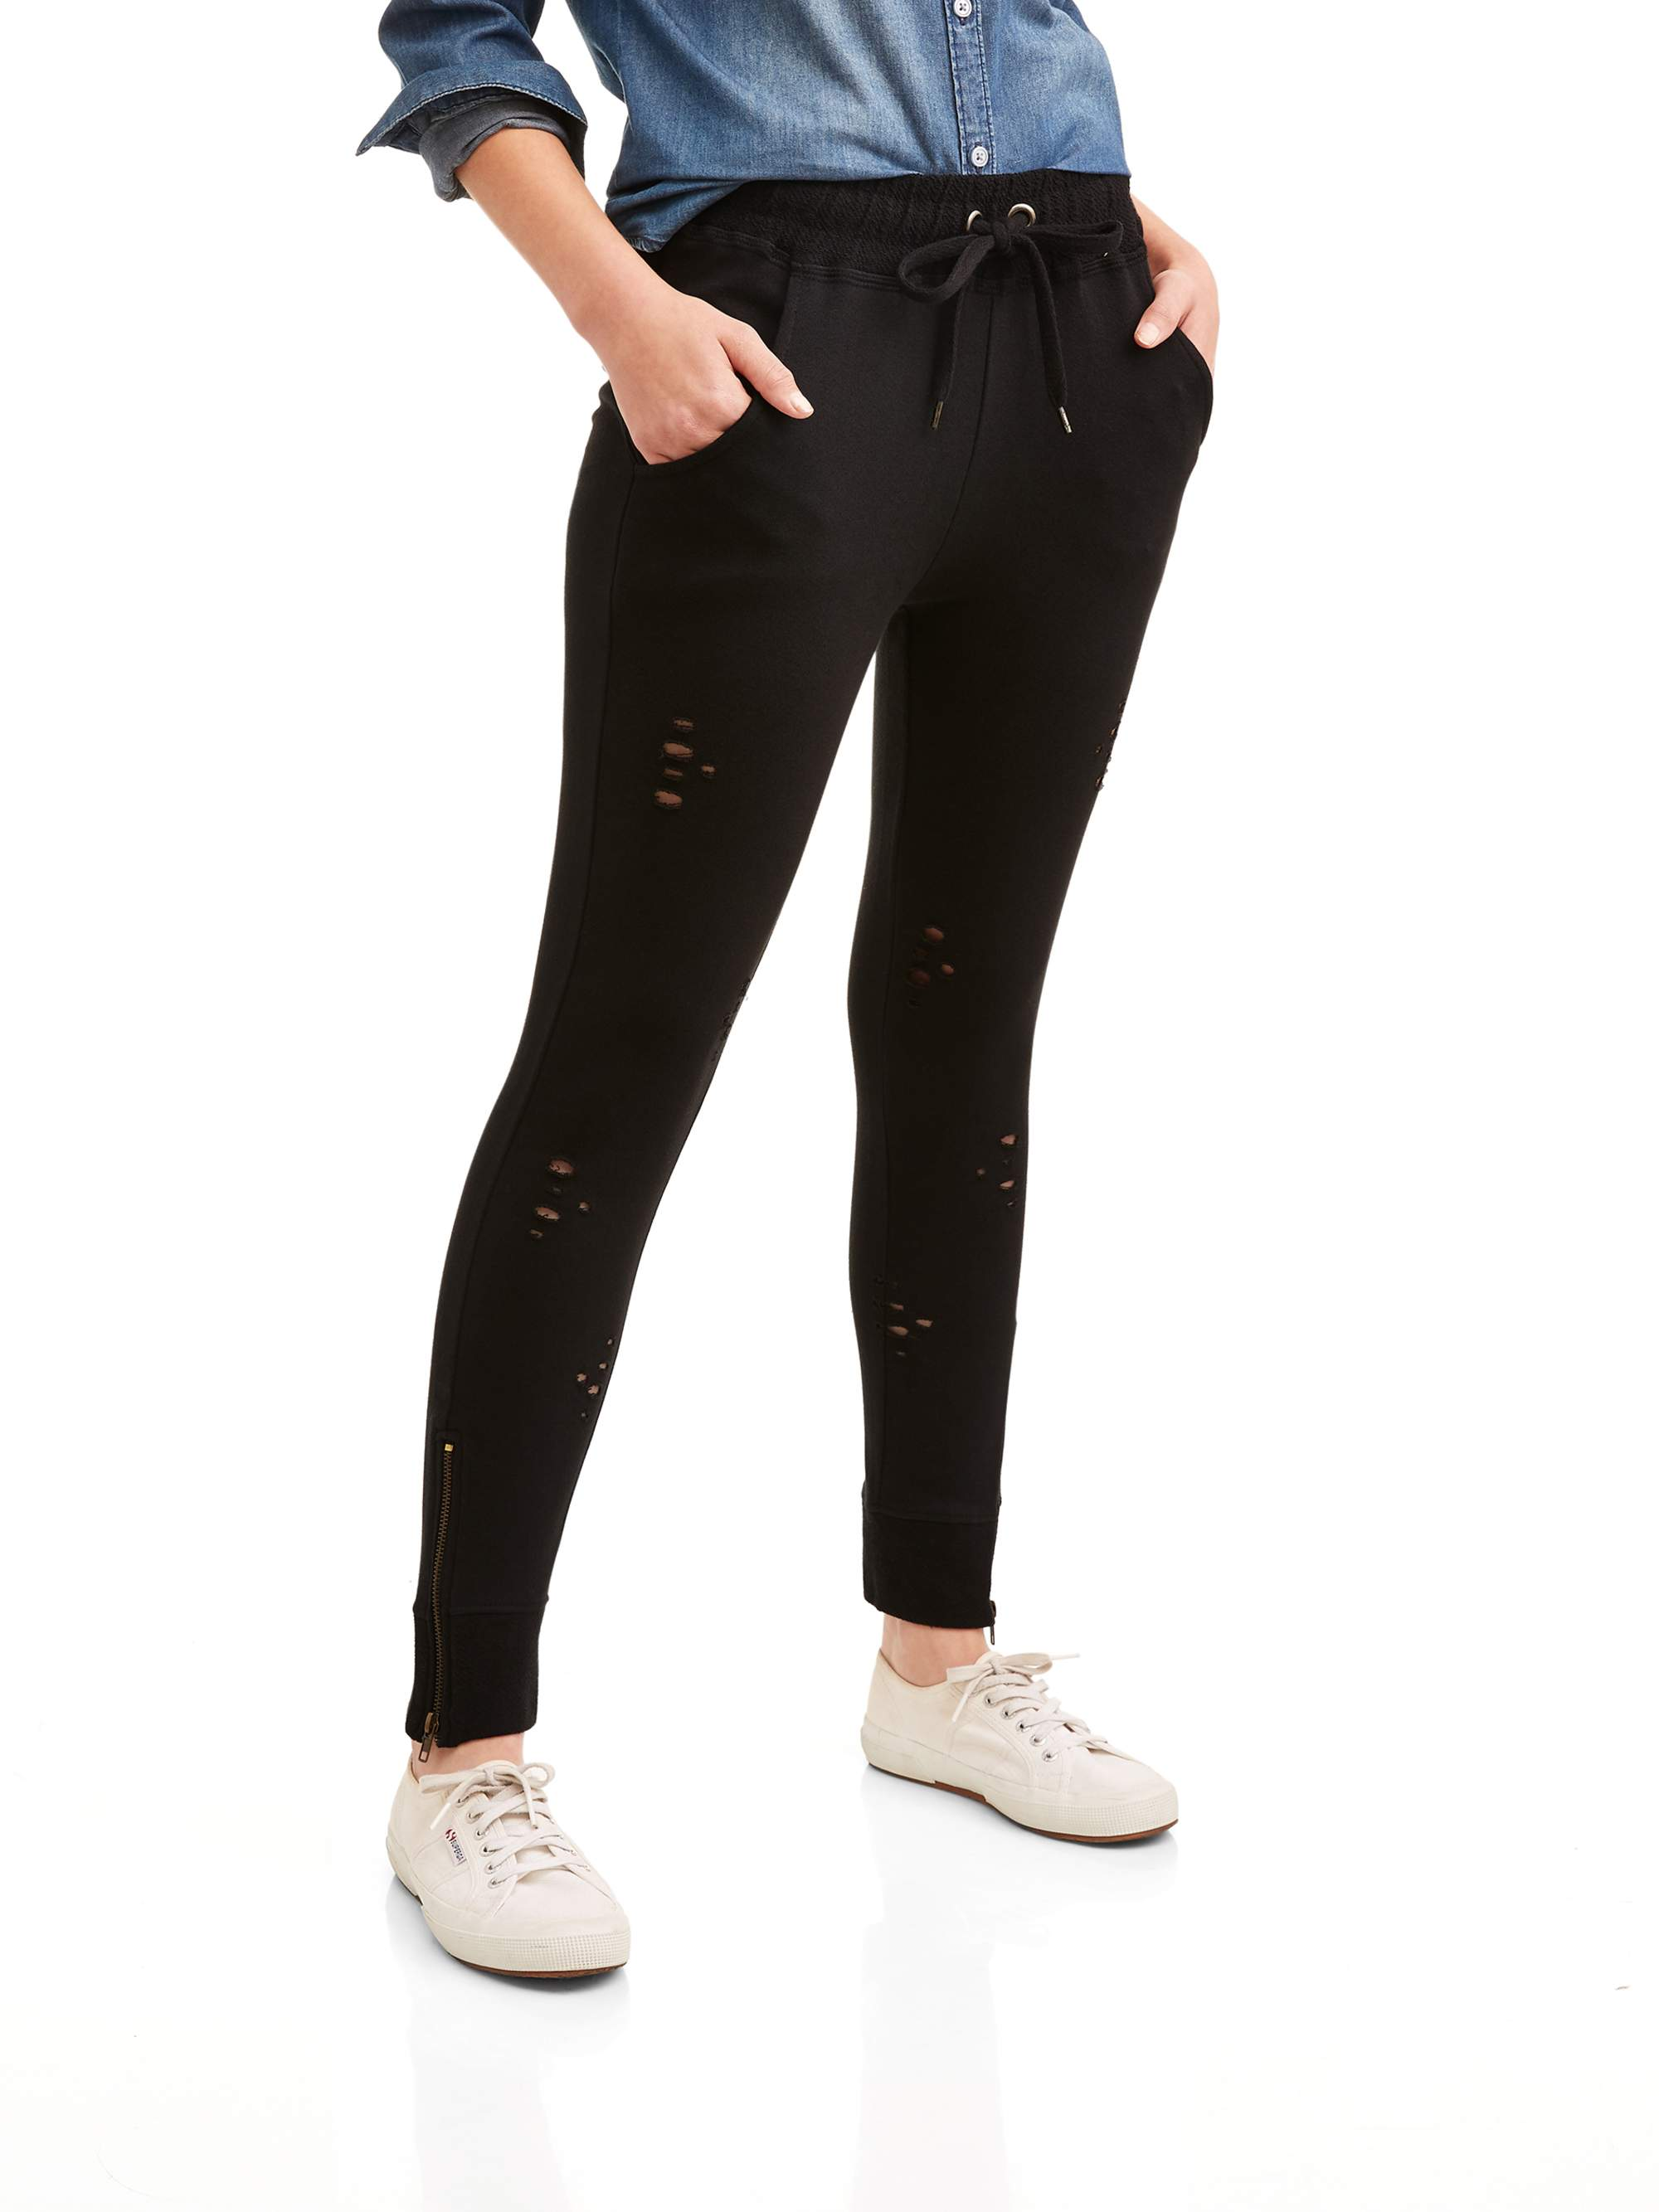 New York Laundry Athleisure Women's Distressed Jogger Pant With Zipper